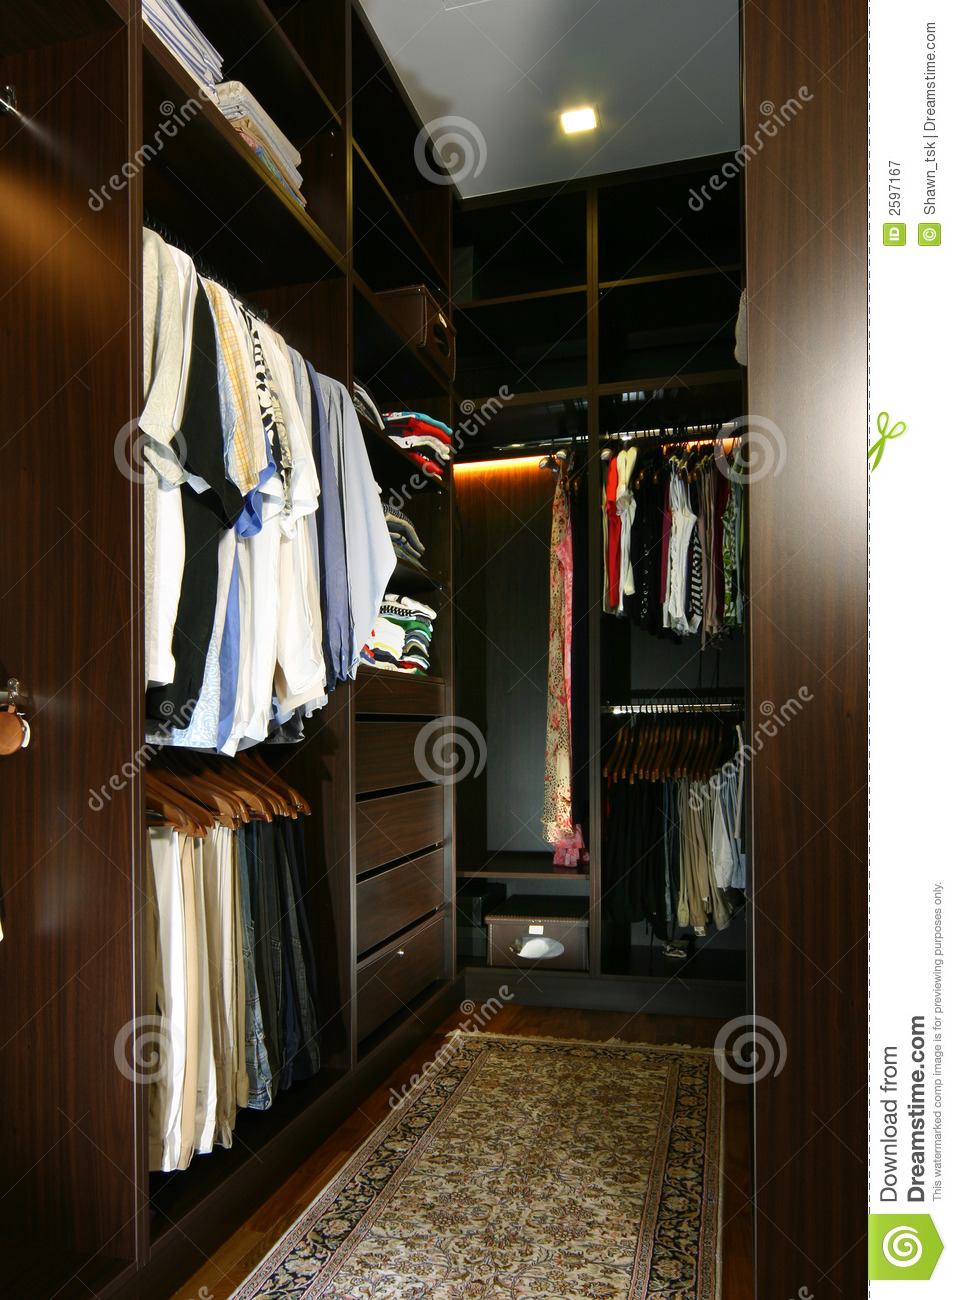 Interior Design Wardrobe Royalty Free Stock Photography